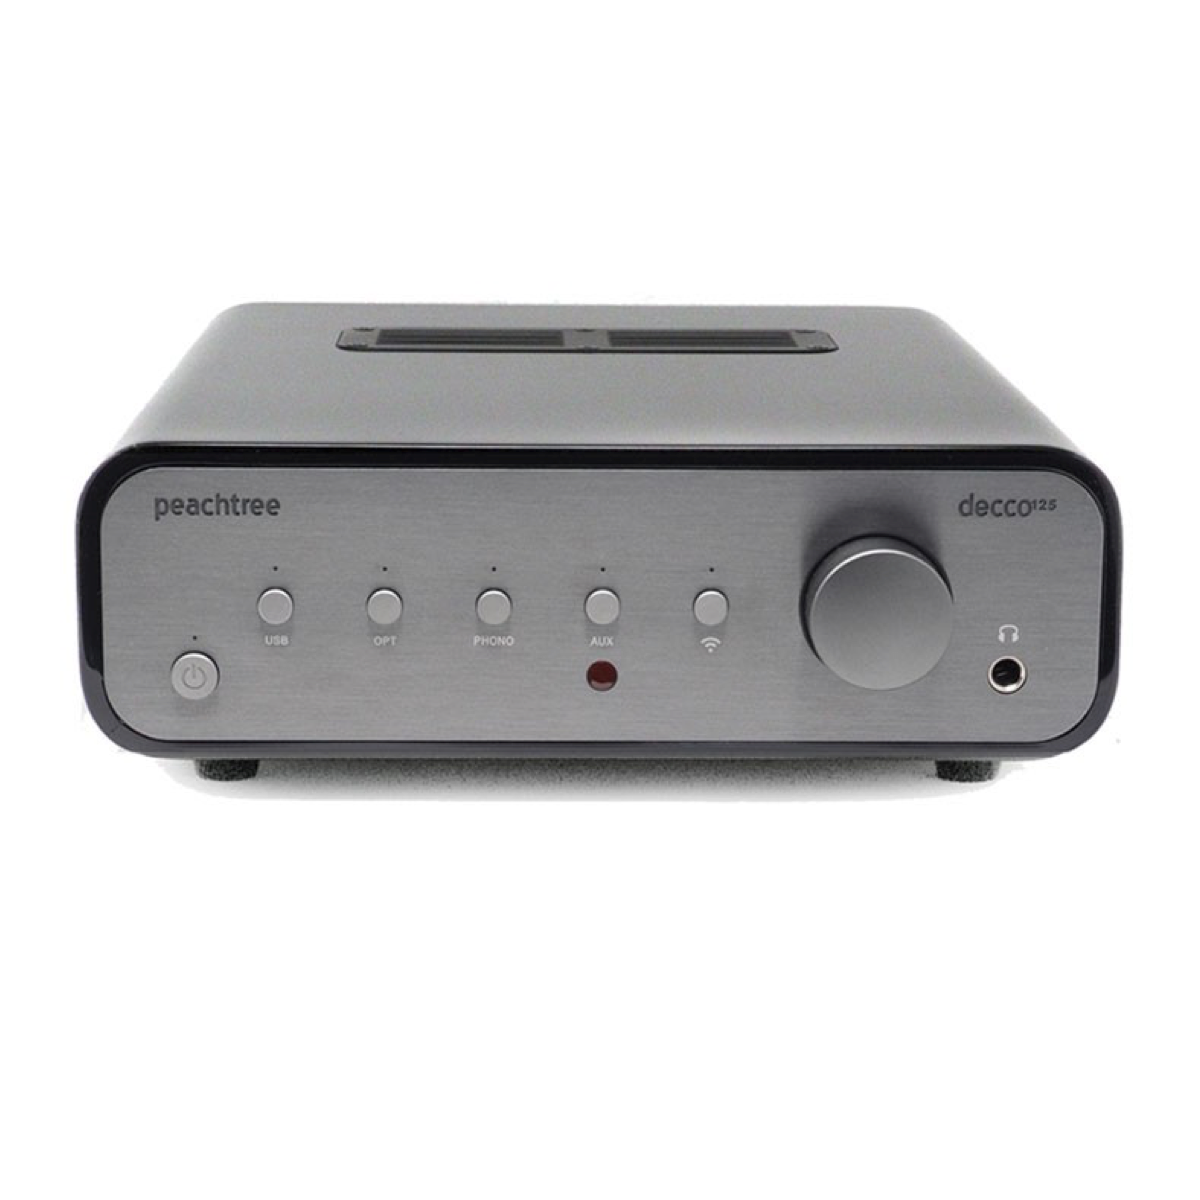 Peachtree Audio decco125 - Integrated Amplifier, Peachtree Audio, Integrated Amplifier - AVStore.in